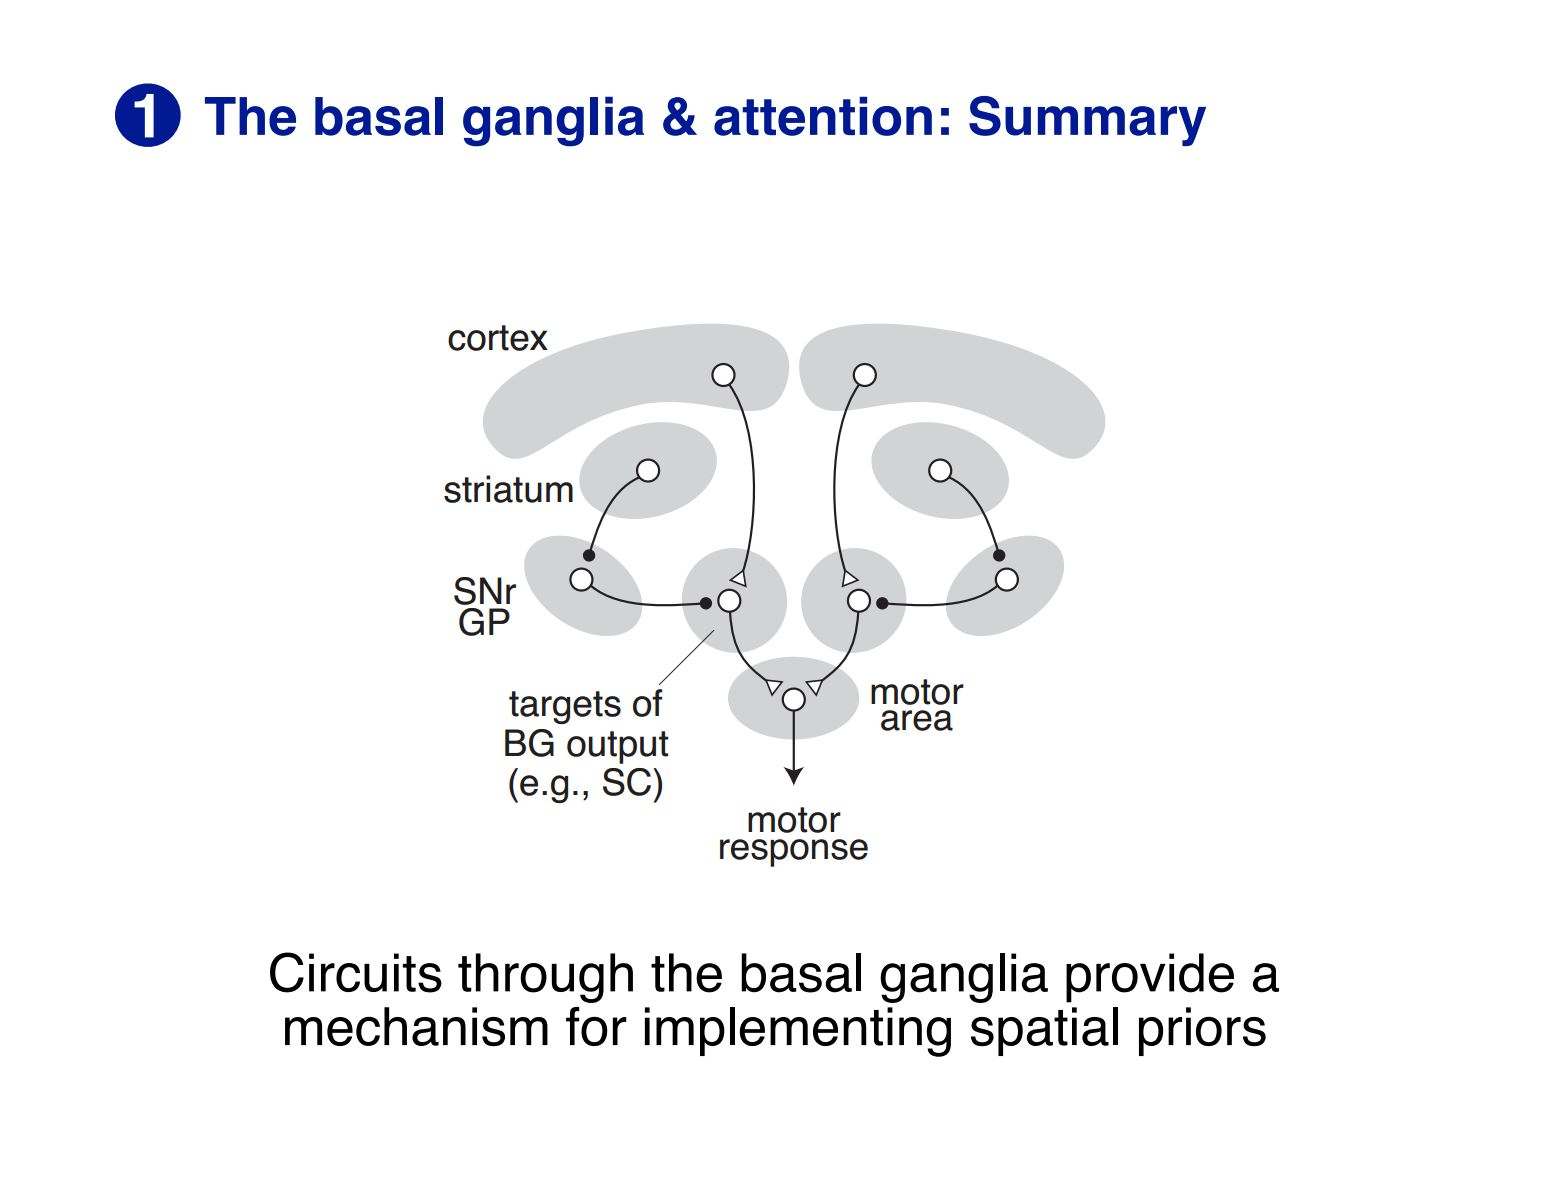 Basal ganglia and attention